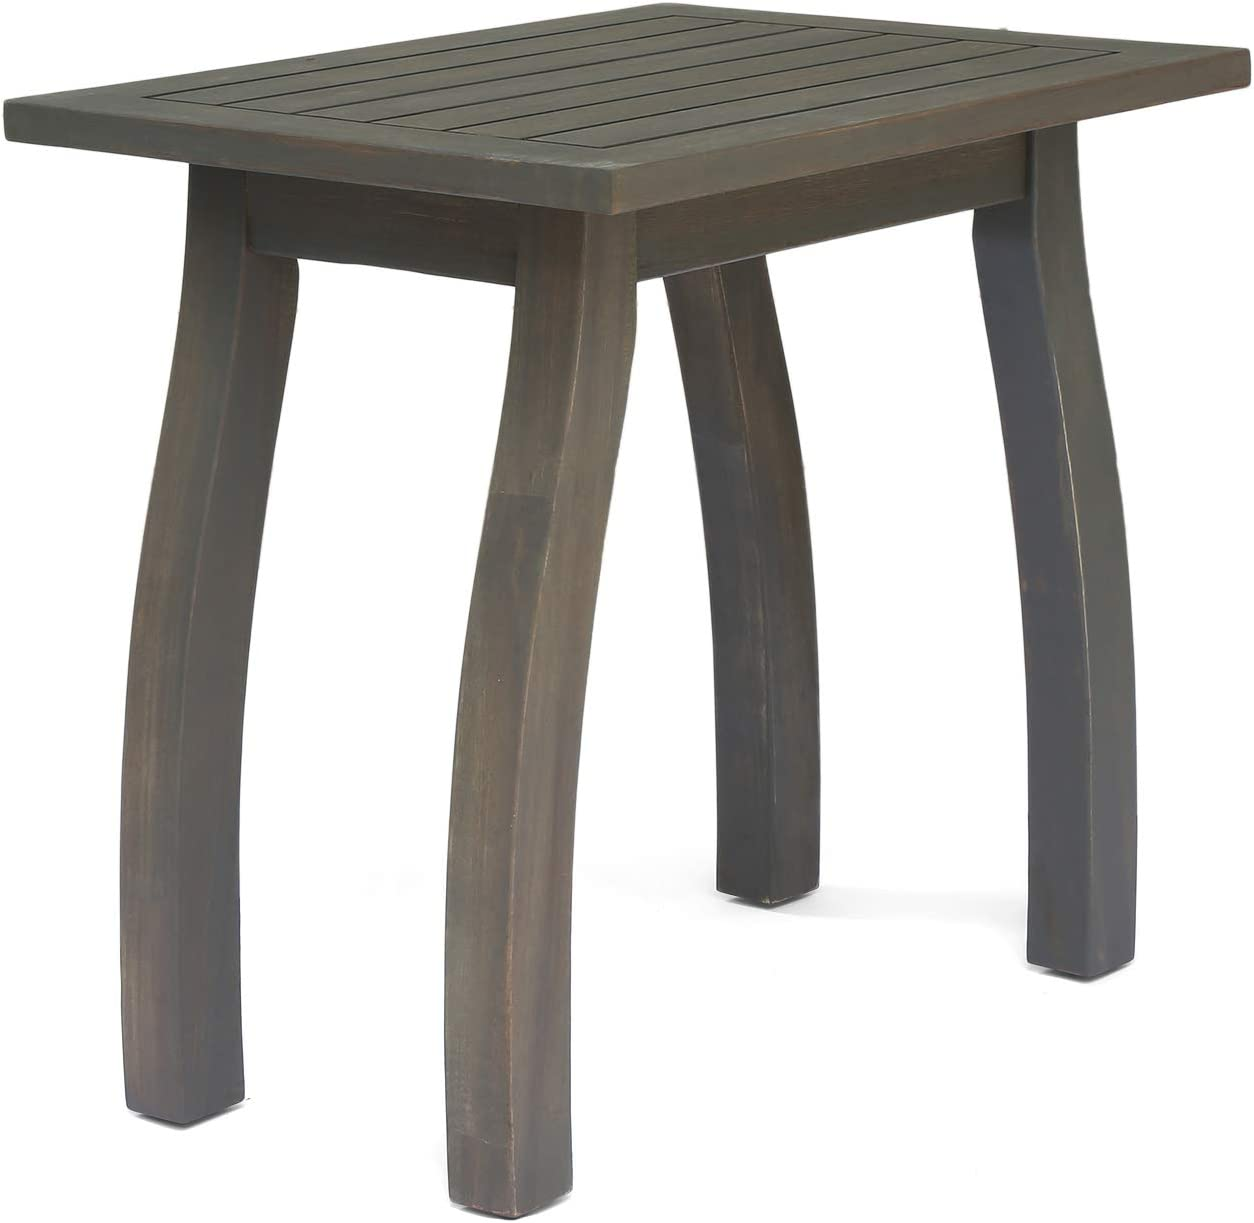 Christopher Knight Home 306099 Sadie Outdoor Acacia Wood Accent Table, Gray Finish